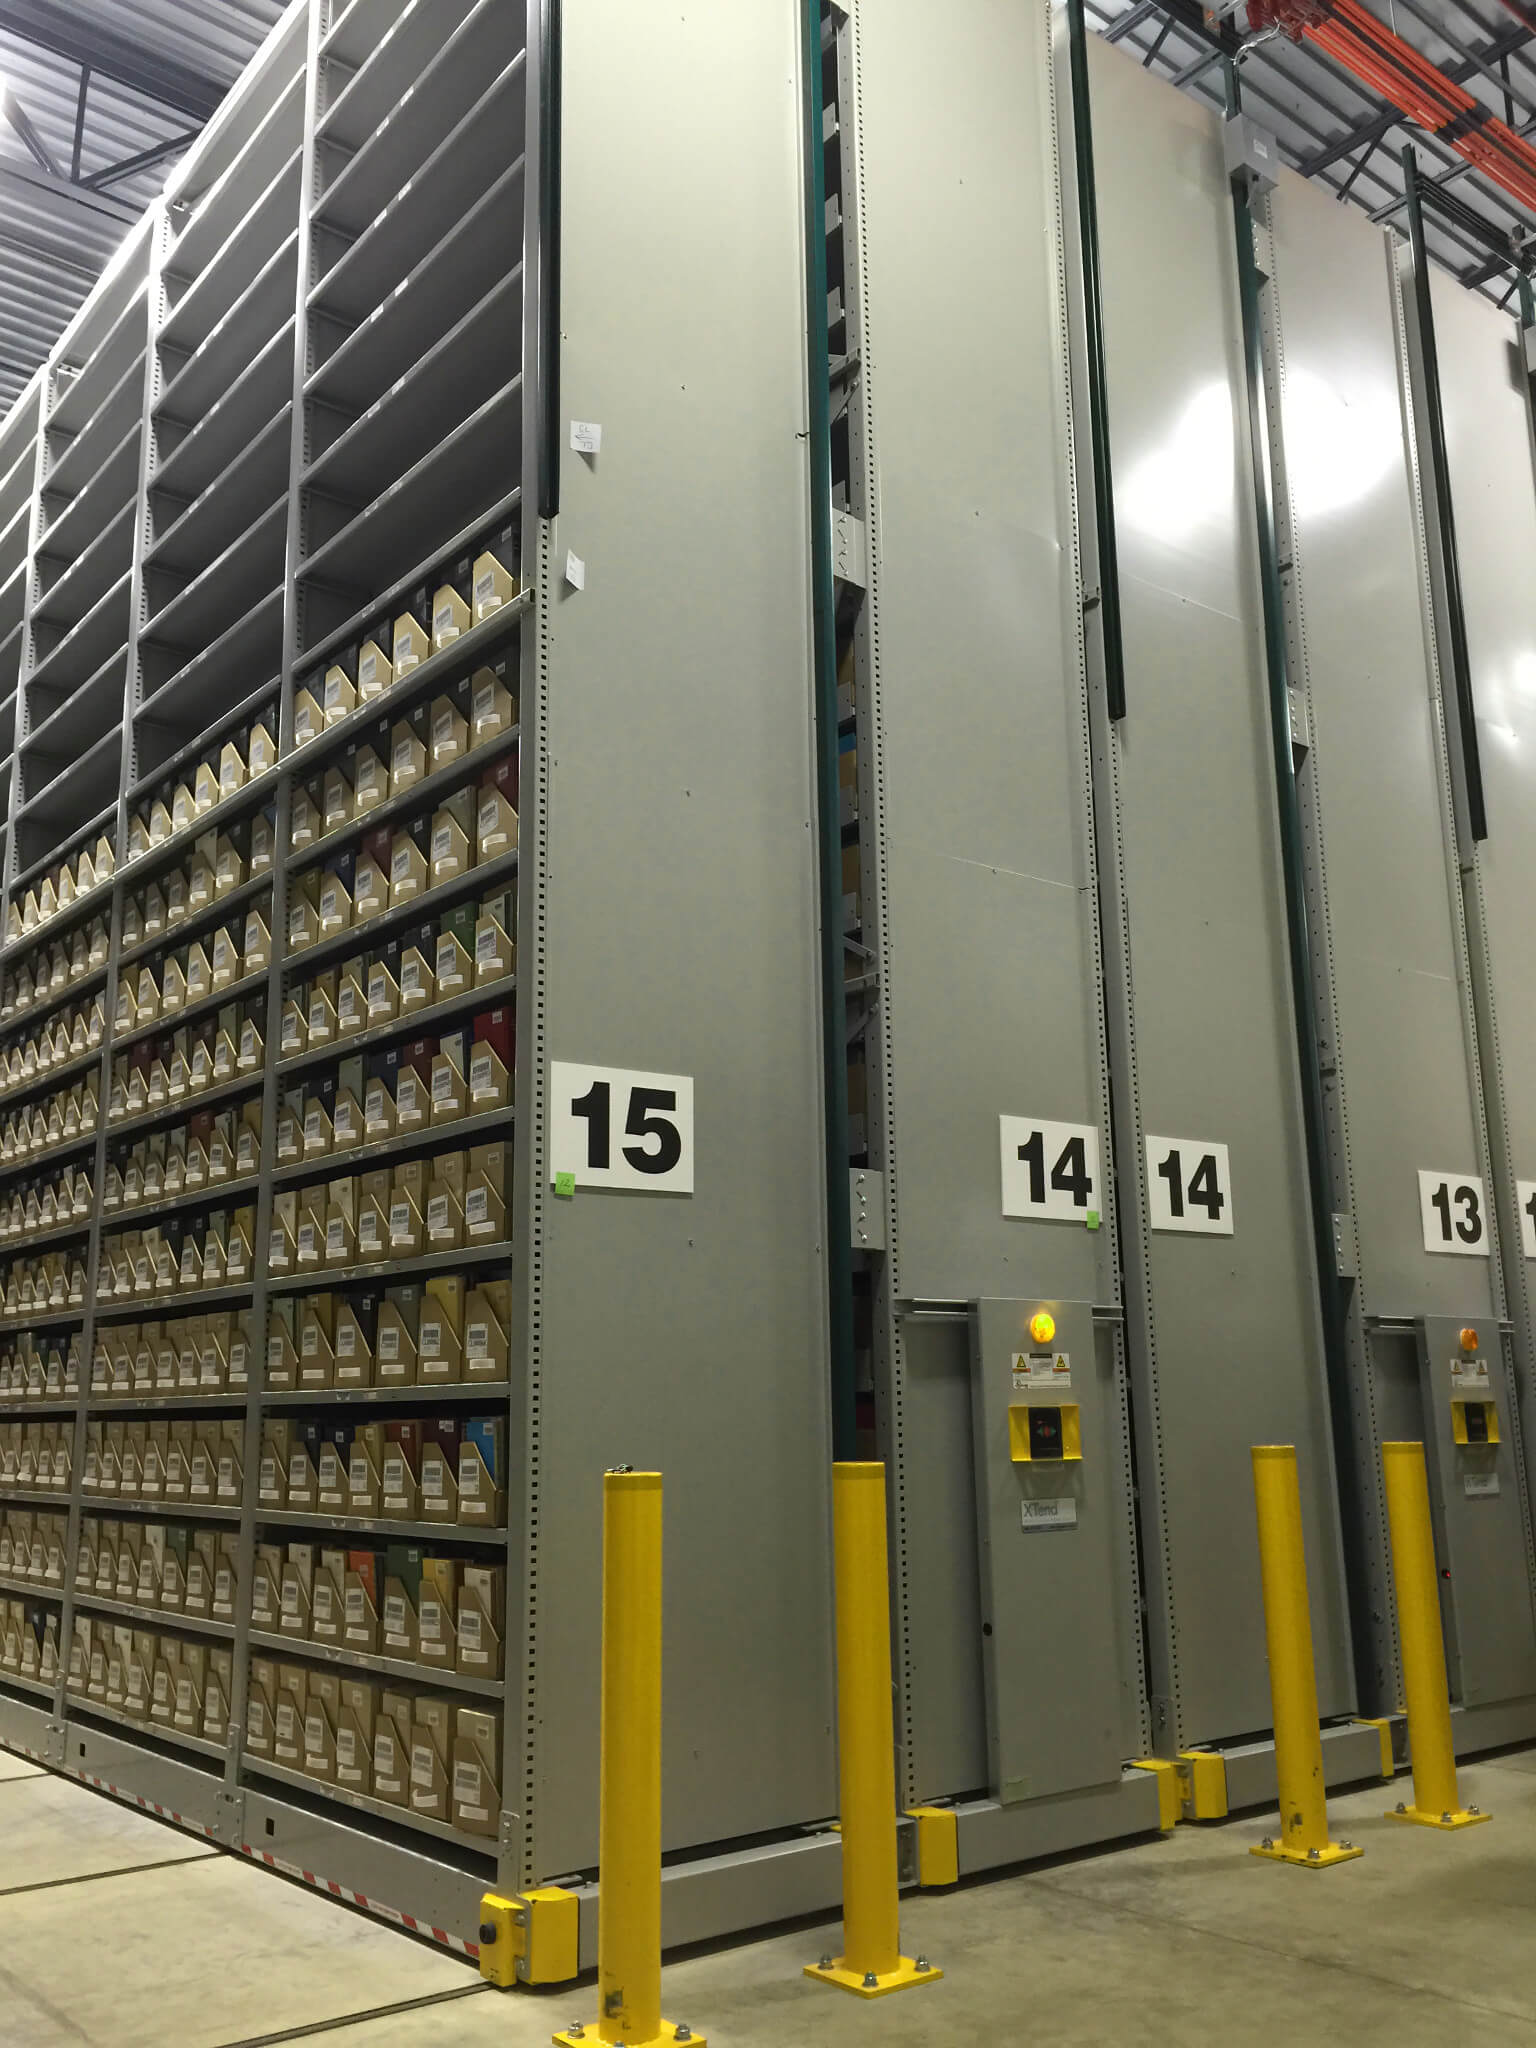 Library Archive Storage at Library off-site Shelving Facility